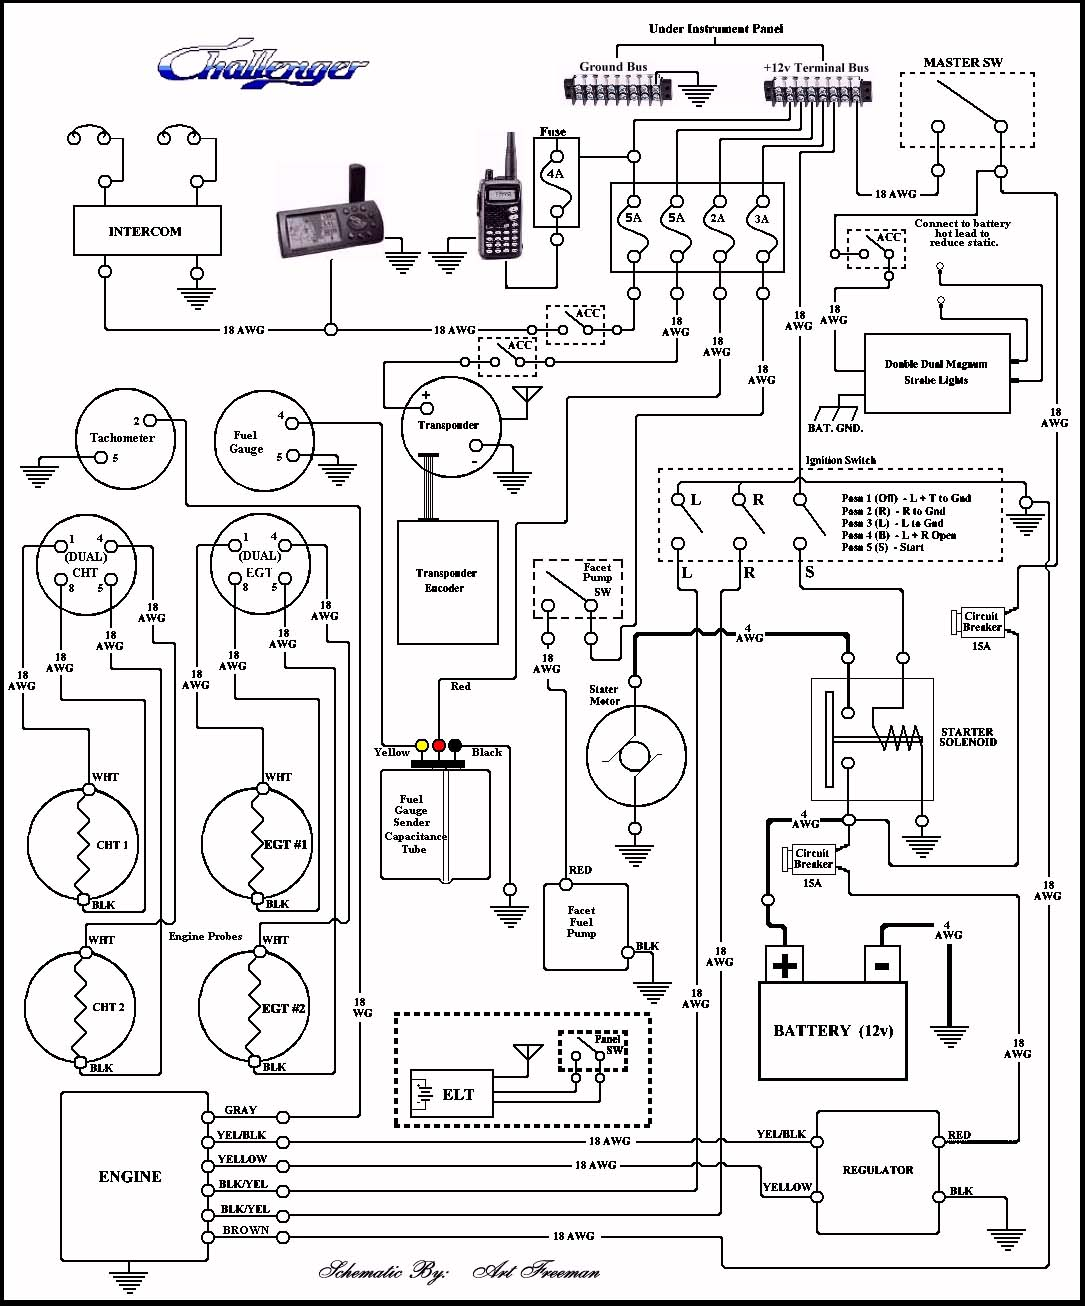 2004 Ford Explorer Liftgate Parts Diagram also Cessna 172 Avionics Wiring Diagram as well RepairGuideContent moreover 643ht Dodge Ram 3500 Quad Cab Trotlle Position Sensor Low Value additionally 03 Avalanche Bcm Wiring Diagram. on engine control module wiring harness